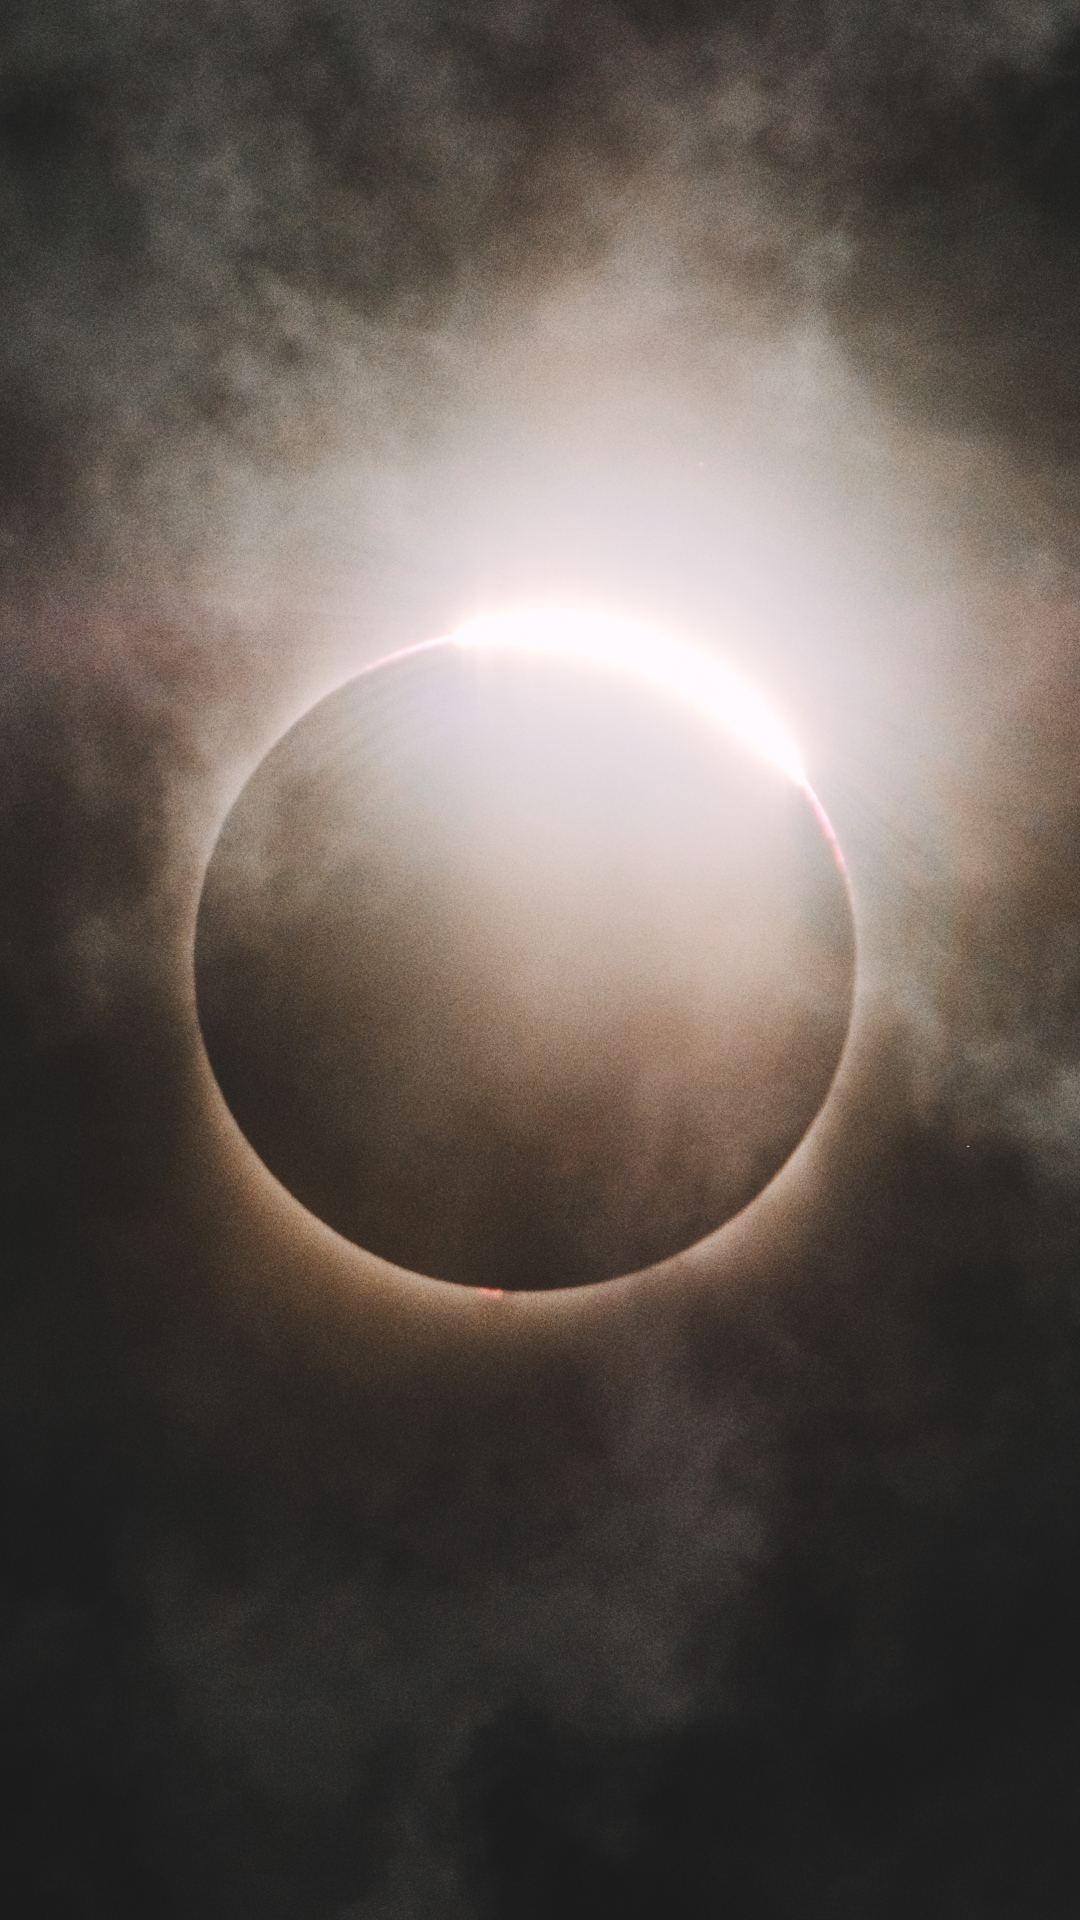 iphone wallpaper eclipse moon sun sky Eclipse